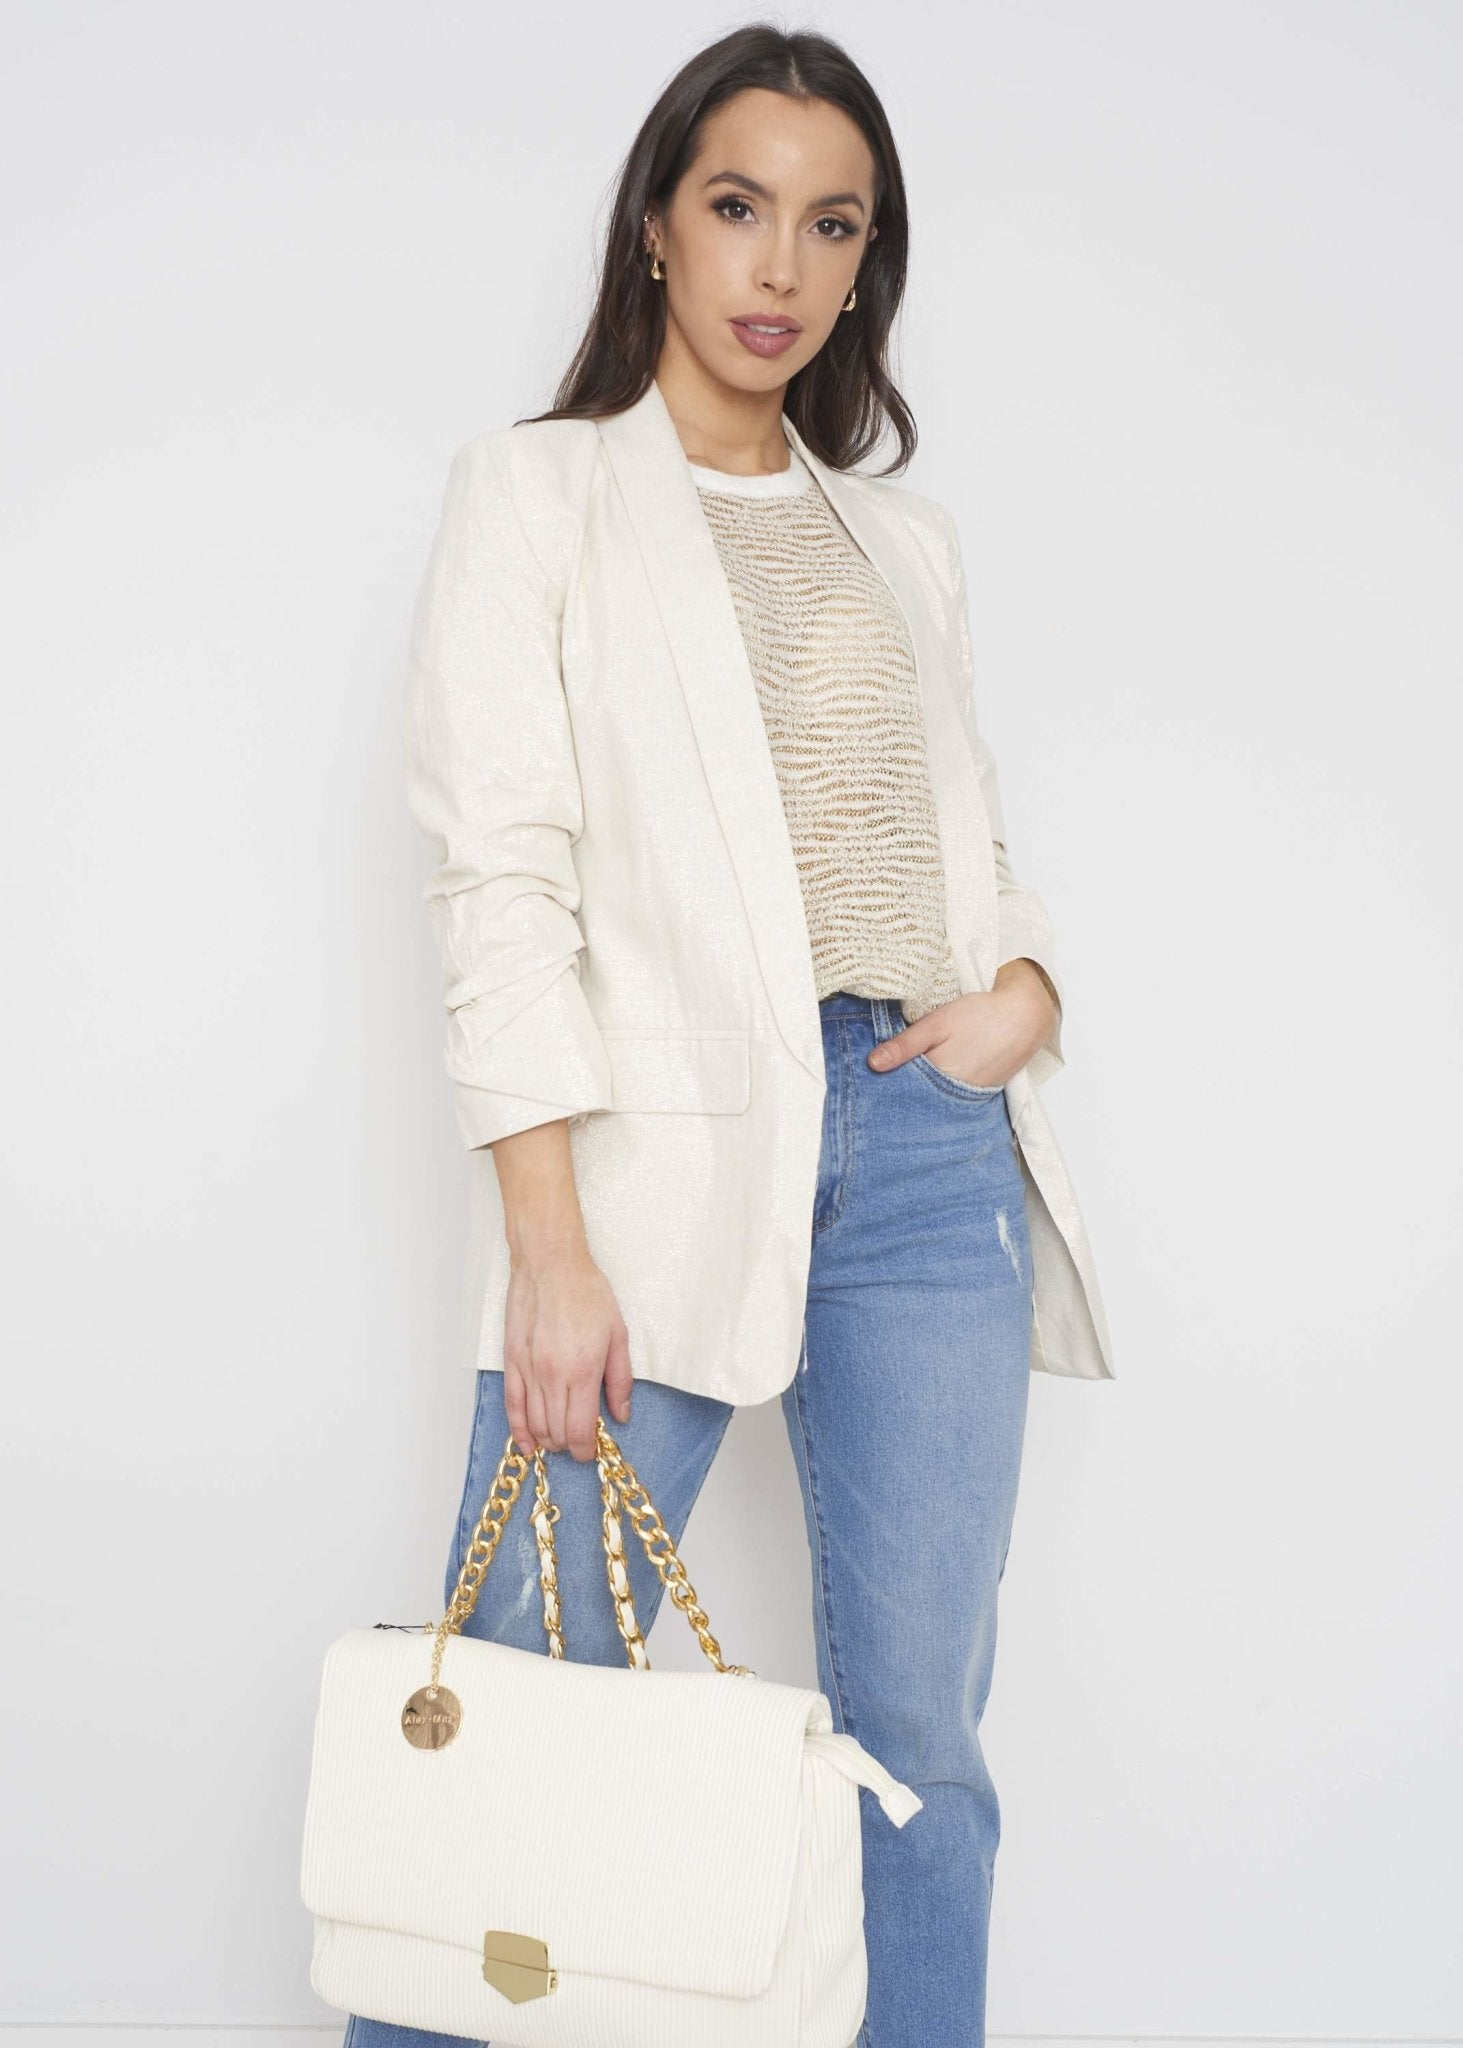 Alba Linen Mix Blazer In Cream - The Walk in Wardrobe